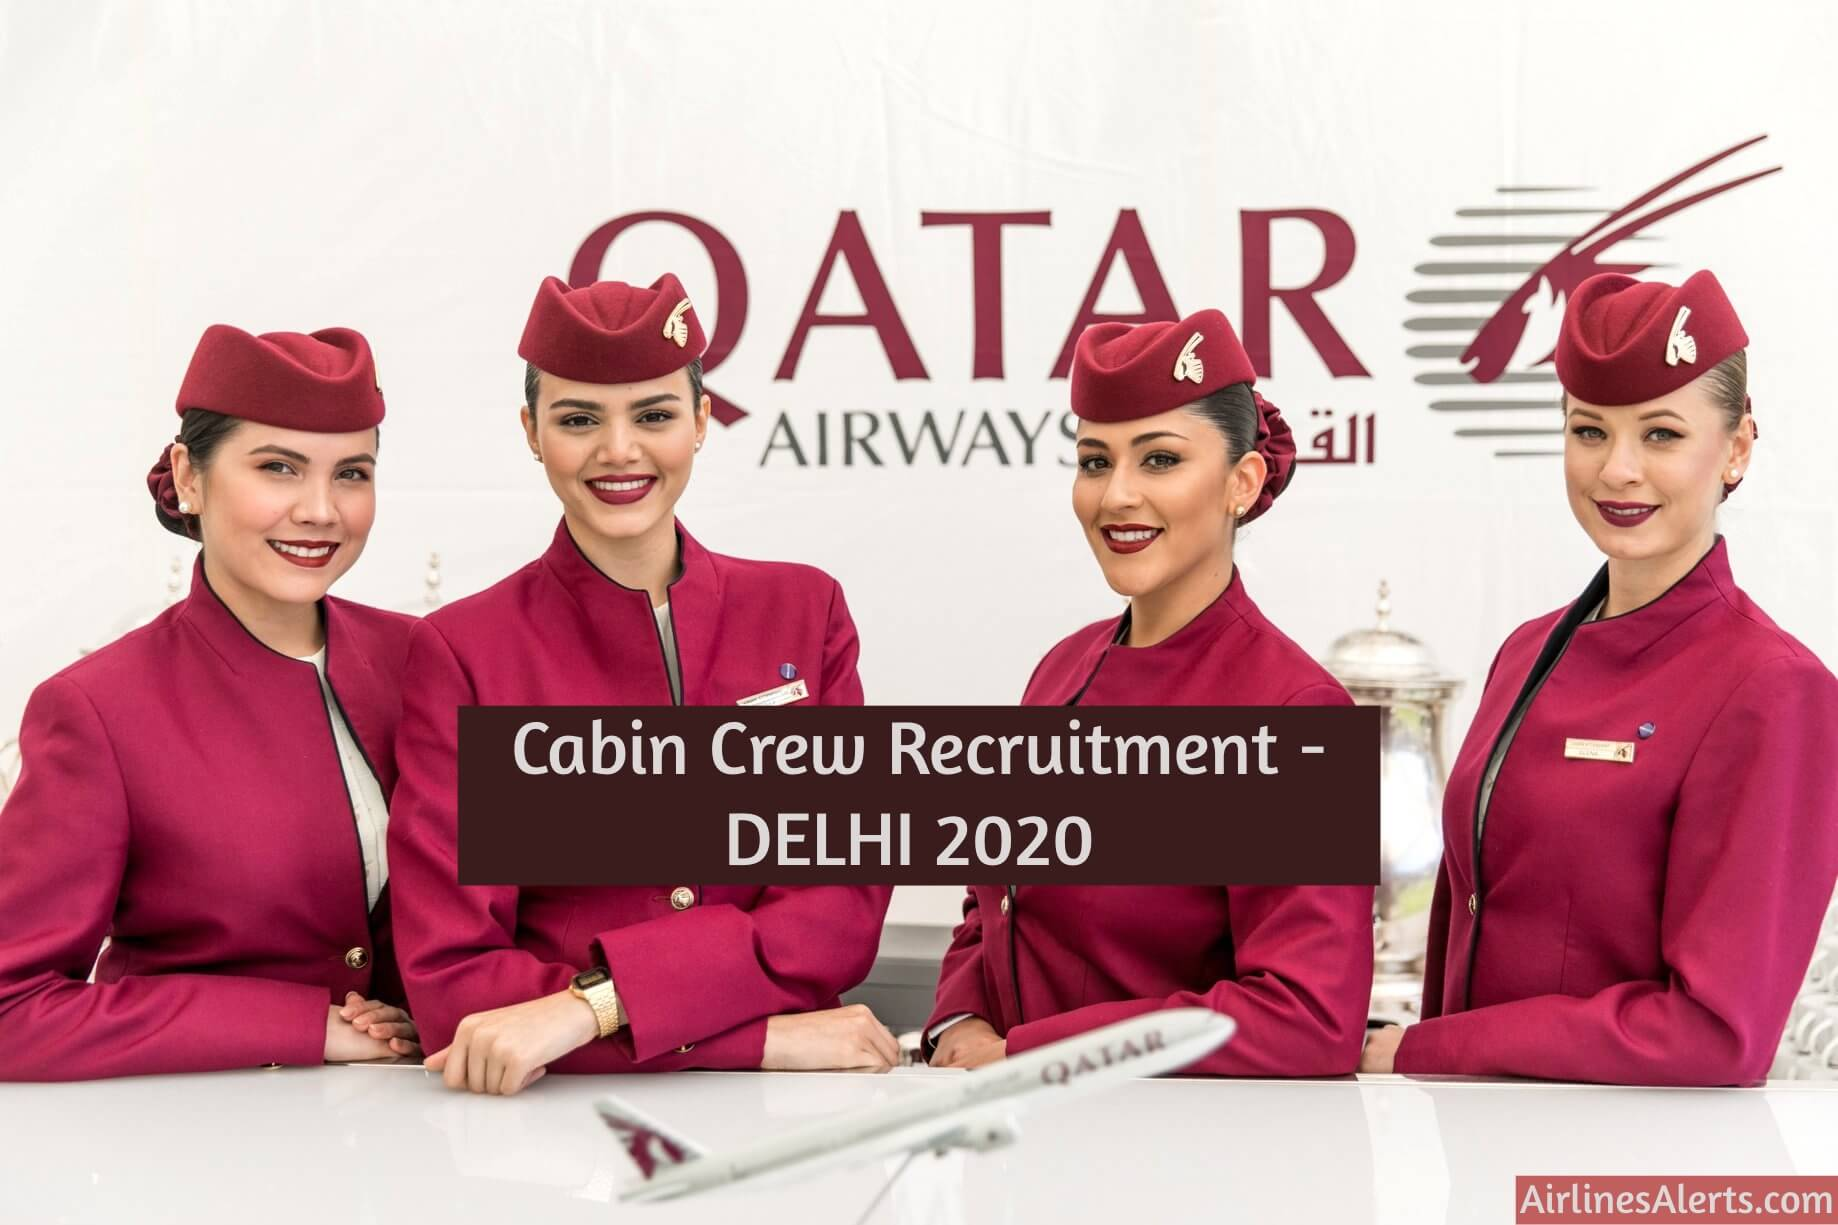 Qatar Airways Cabin Crew Recruitment [Delhi] (February 2020) Apply Now